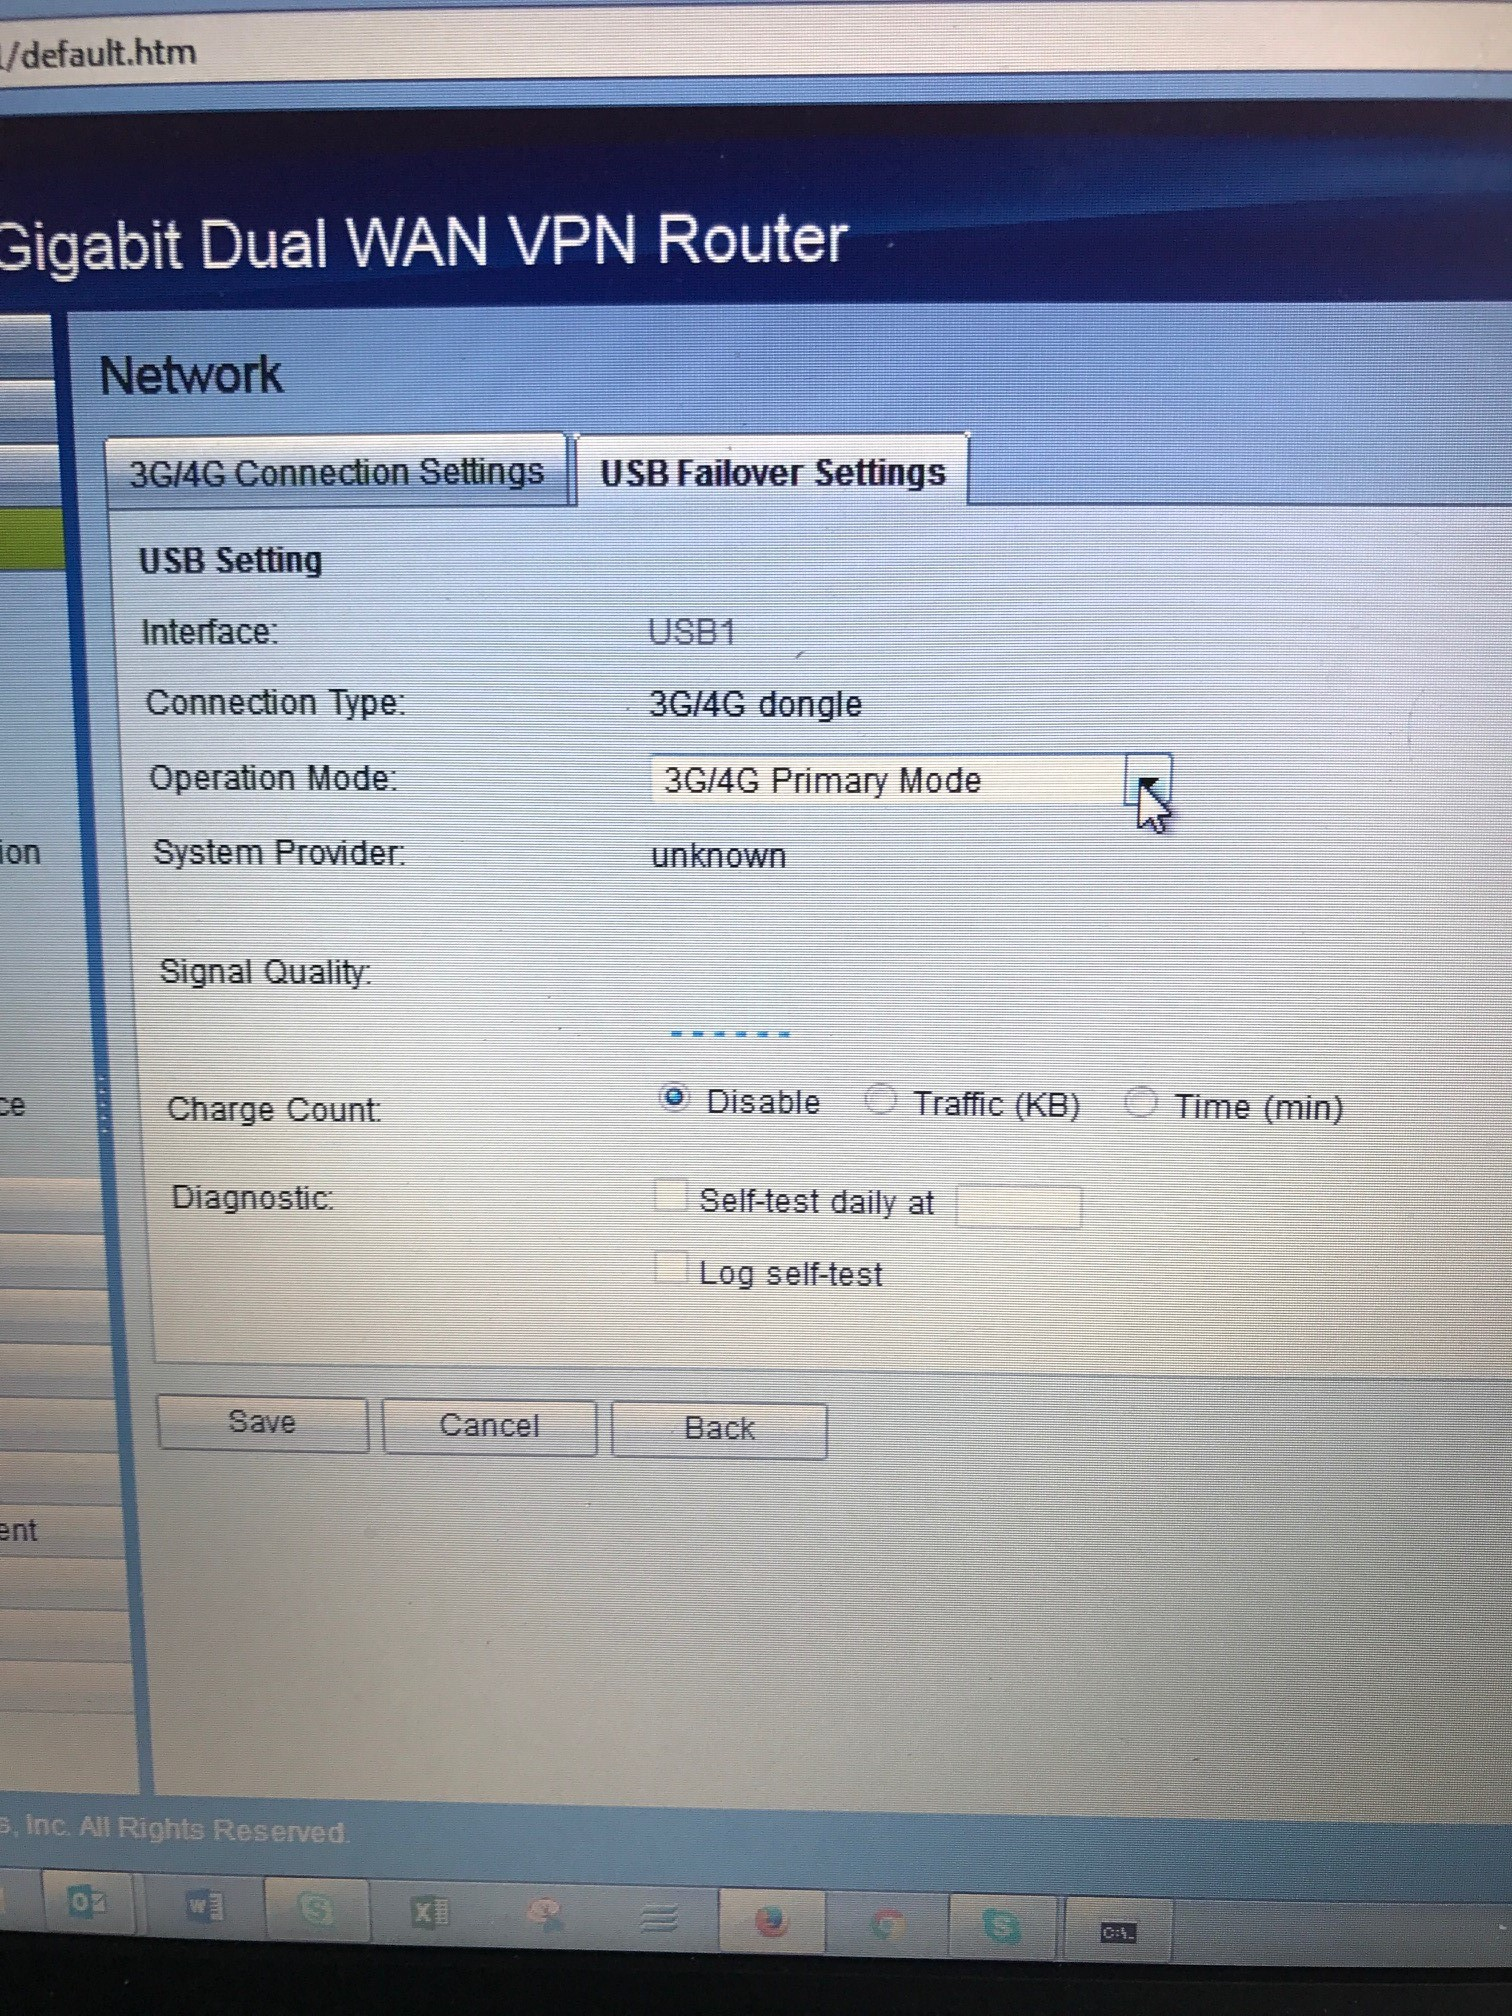 Cisco RV 320 not working with 4G dongle    - Cisco Community